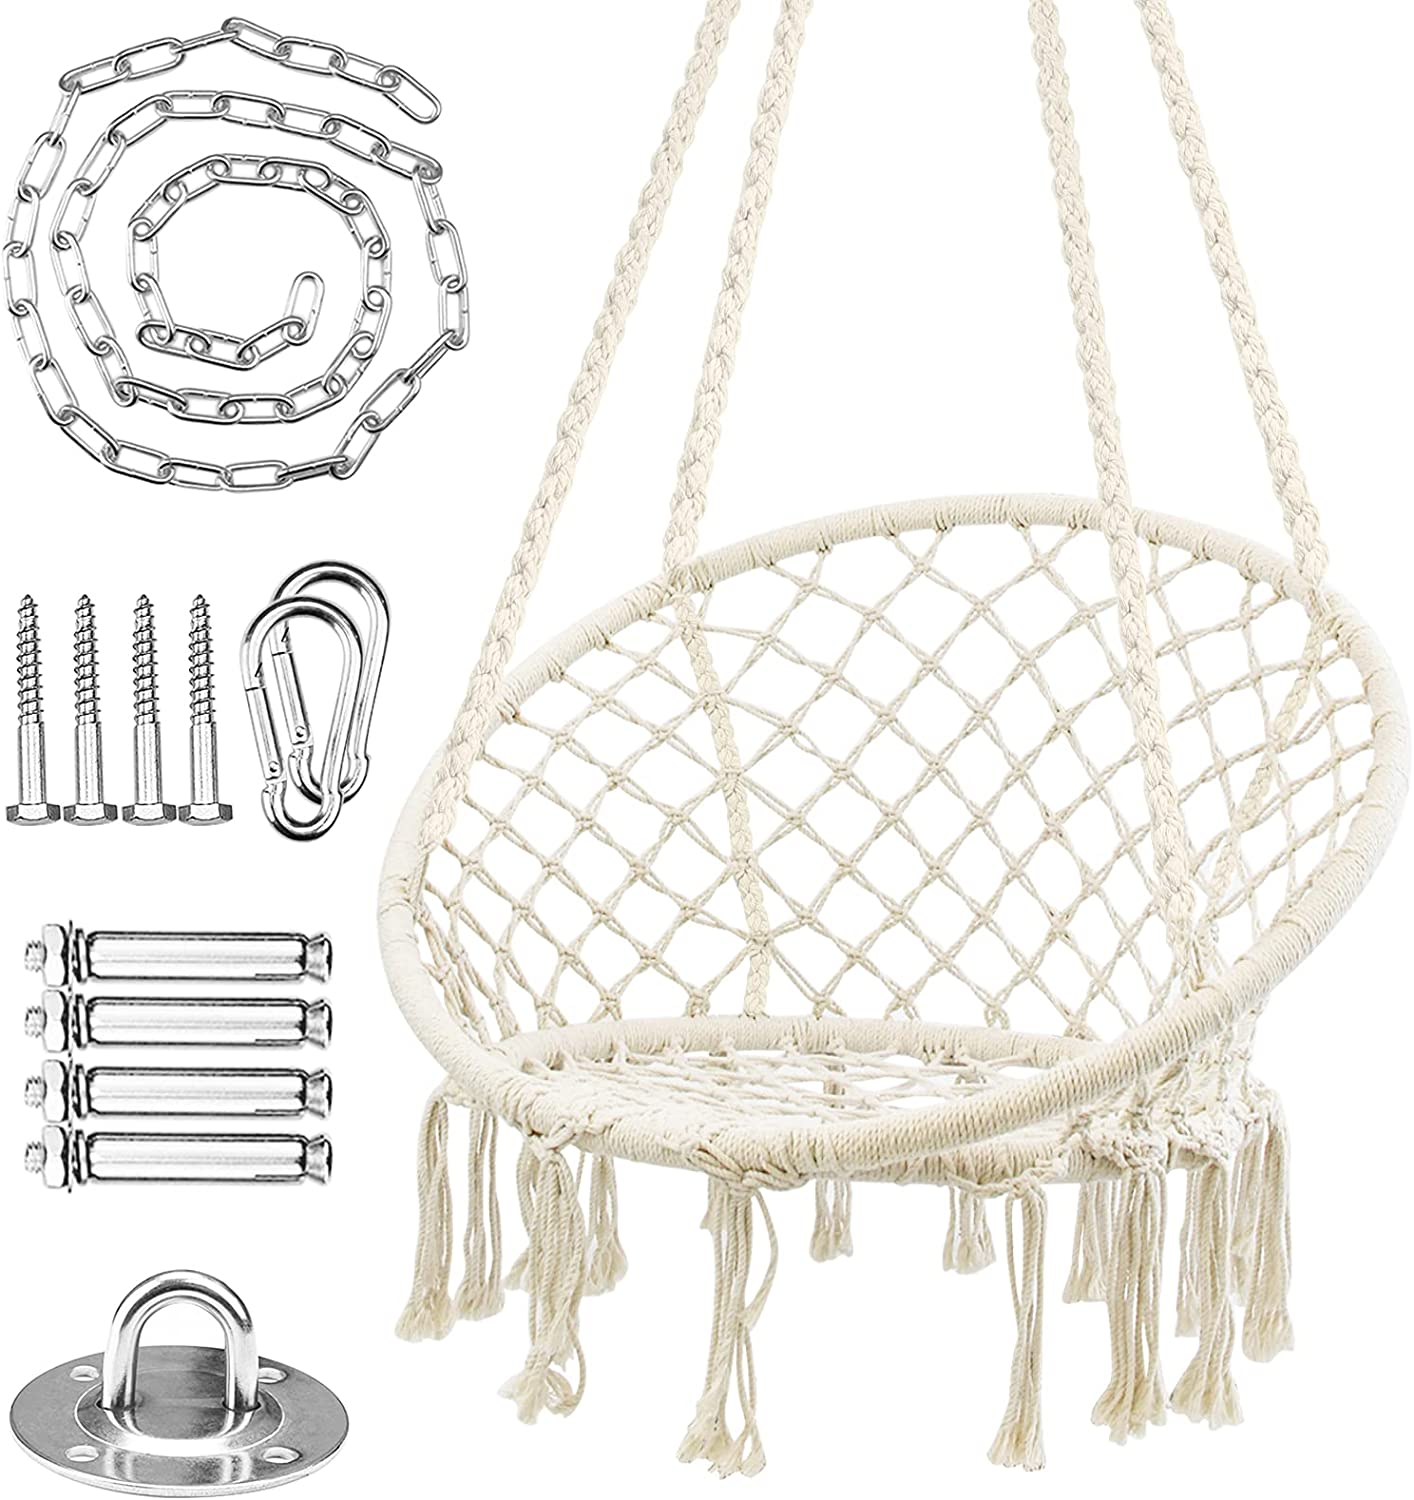 WBHome Hammock Chair Swing Popularity w Fashion Hardware Hanging Kit Rope Cotton M